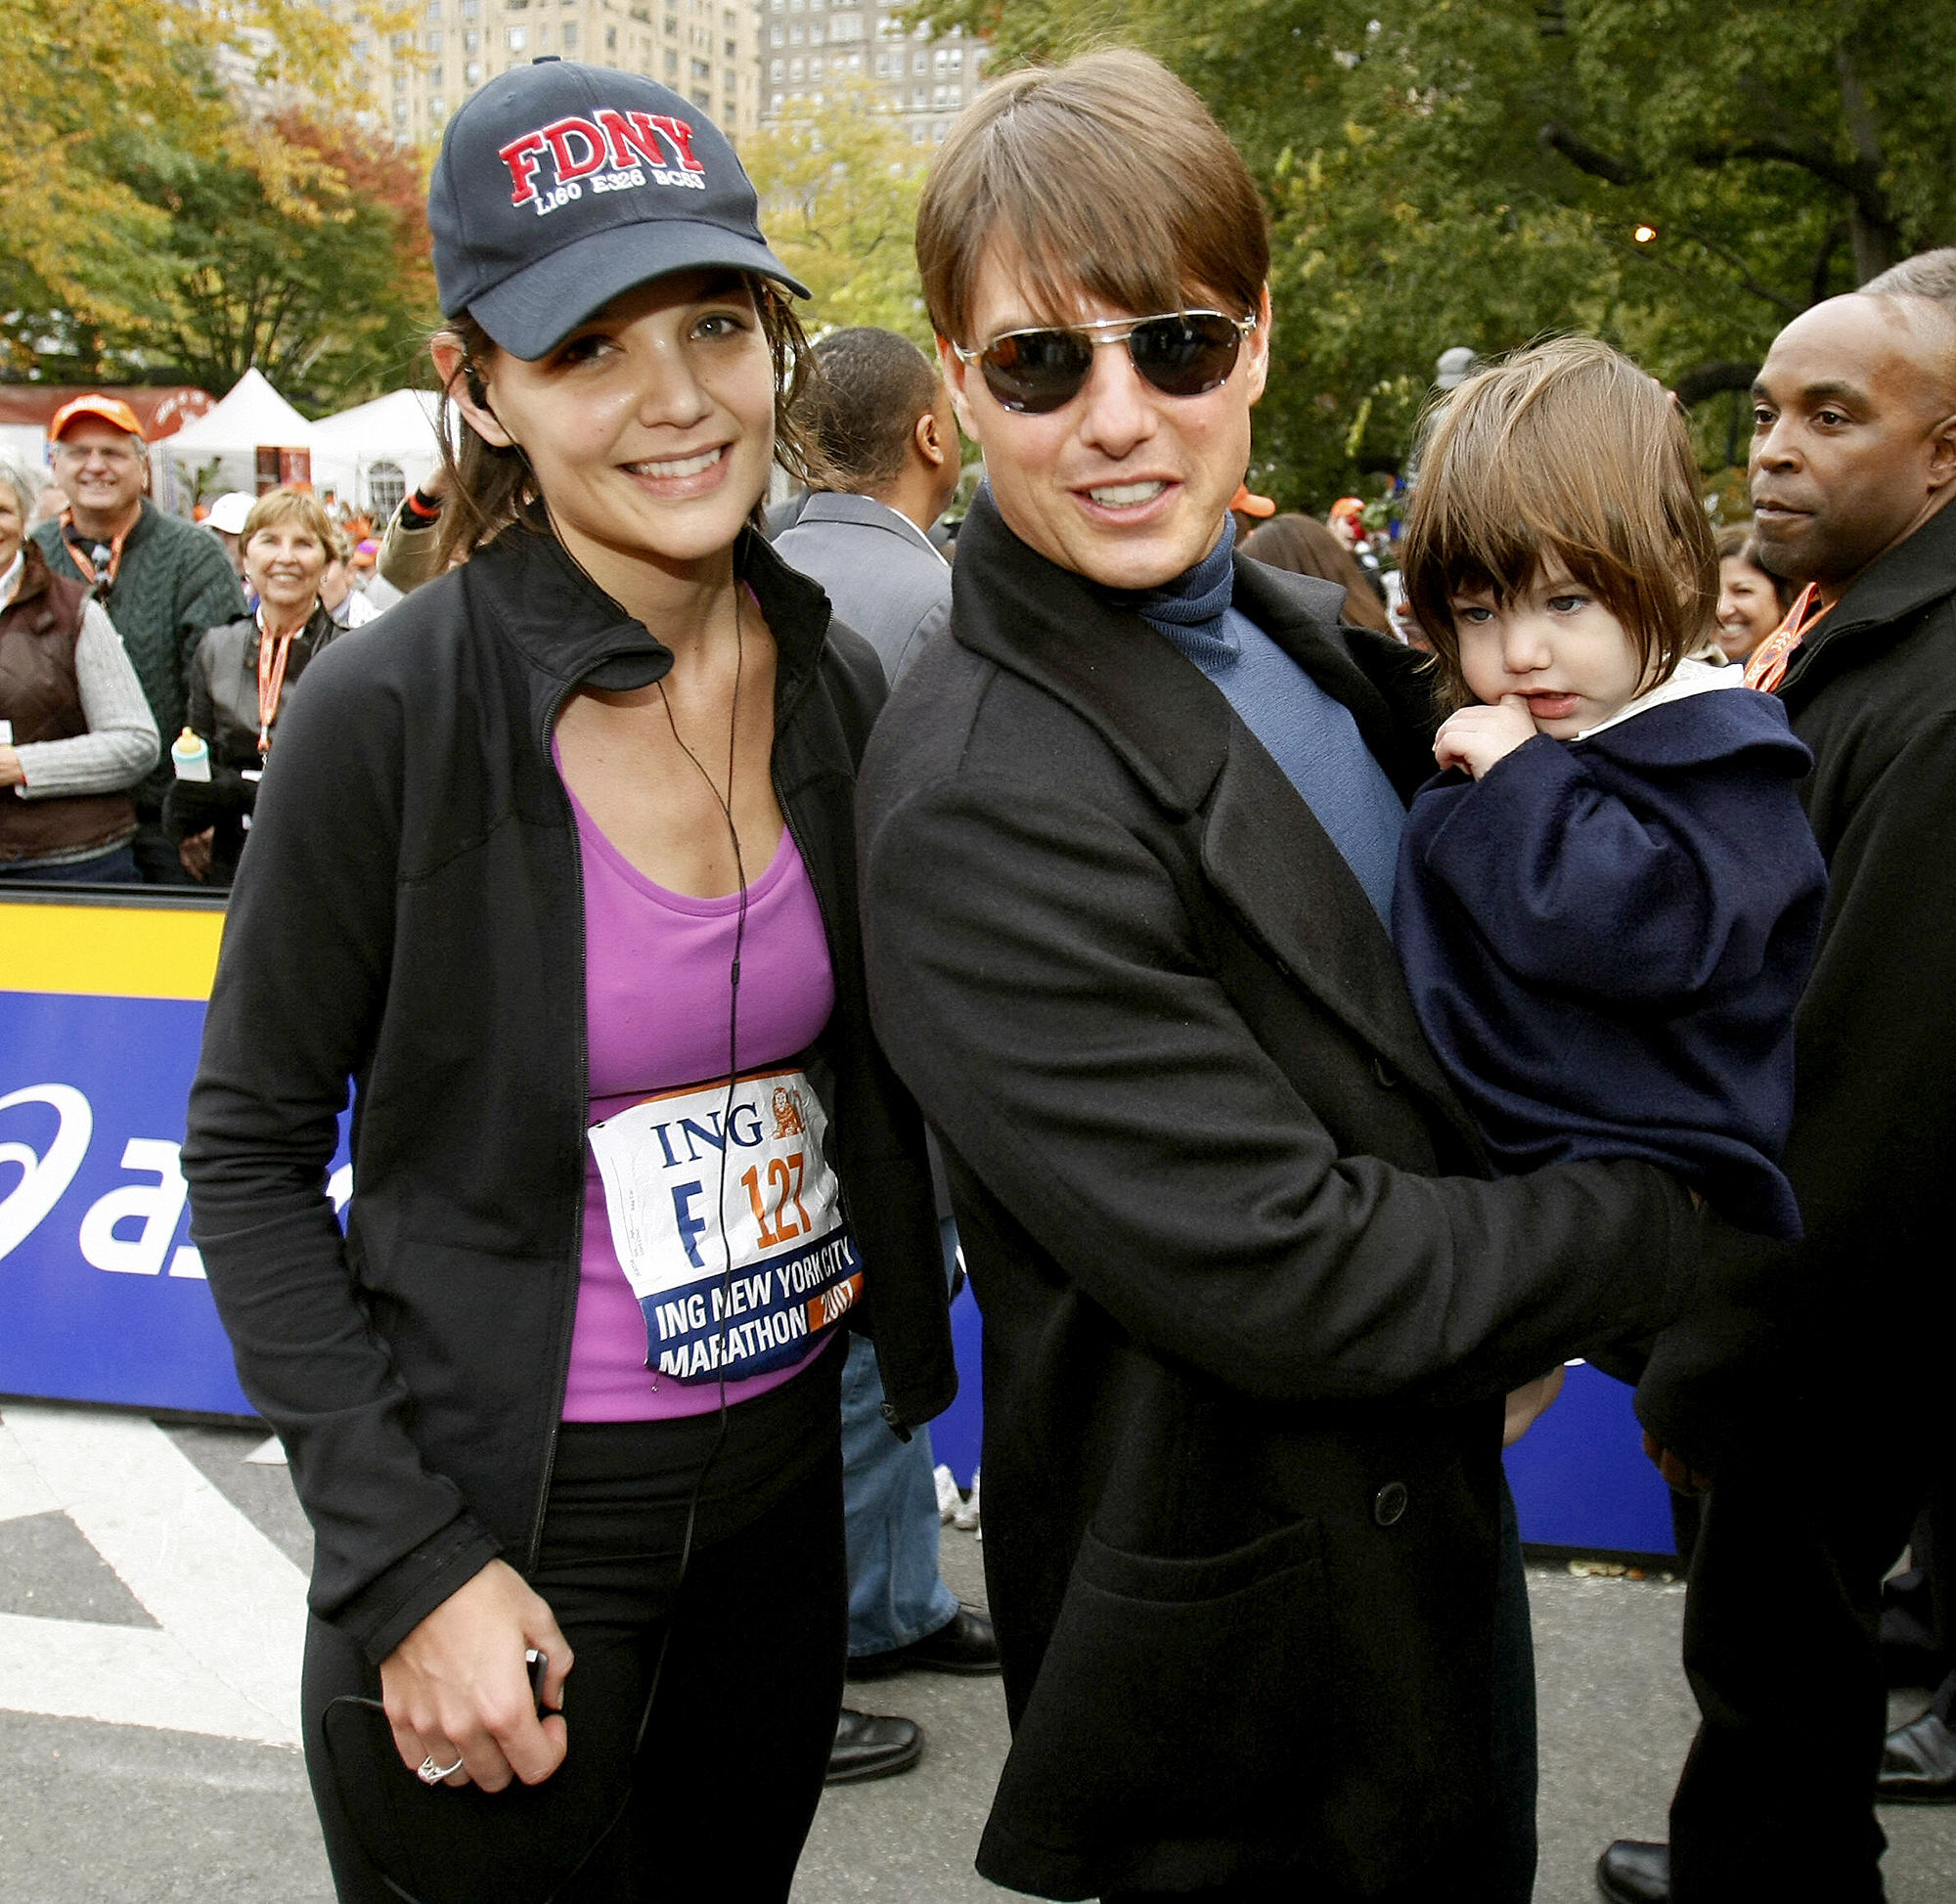 katie-holmes-suri-cruise-tom-cruise-Daddy's-Girl - Way back when she was just a toddler, Suri waited at the finish line with the Top Gun star to greet Holmes after she finished running the 2007 New York City Marathon.